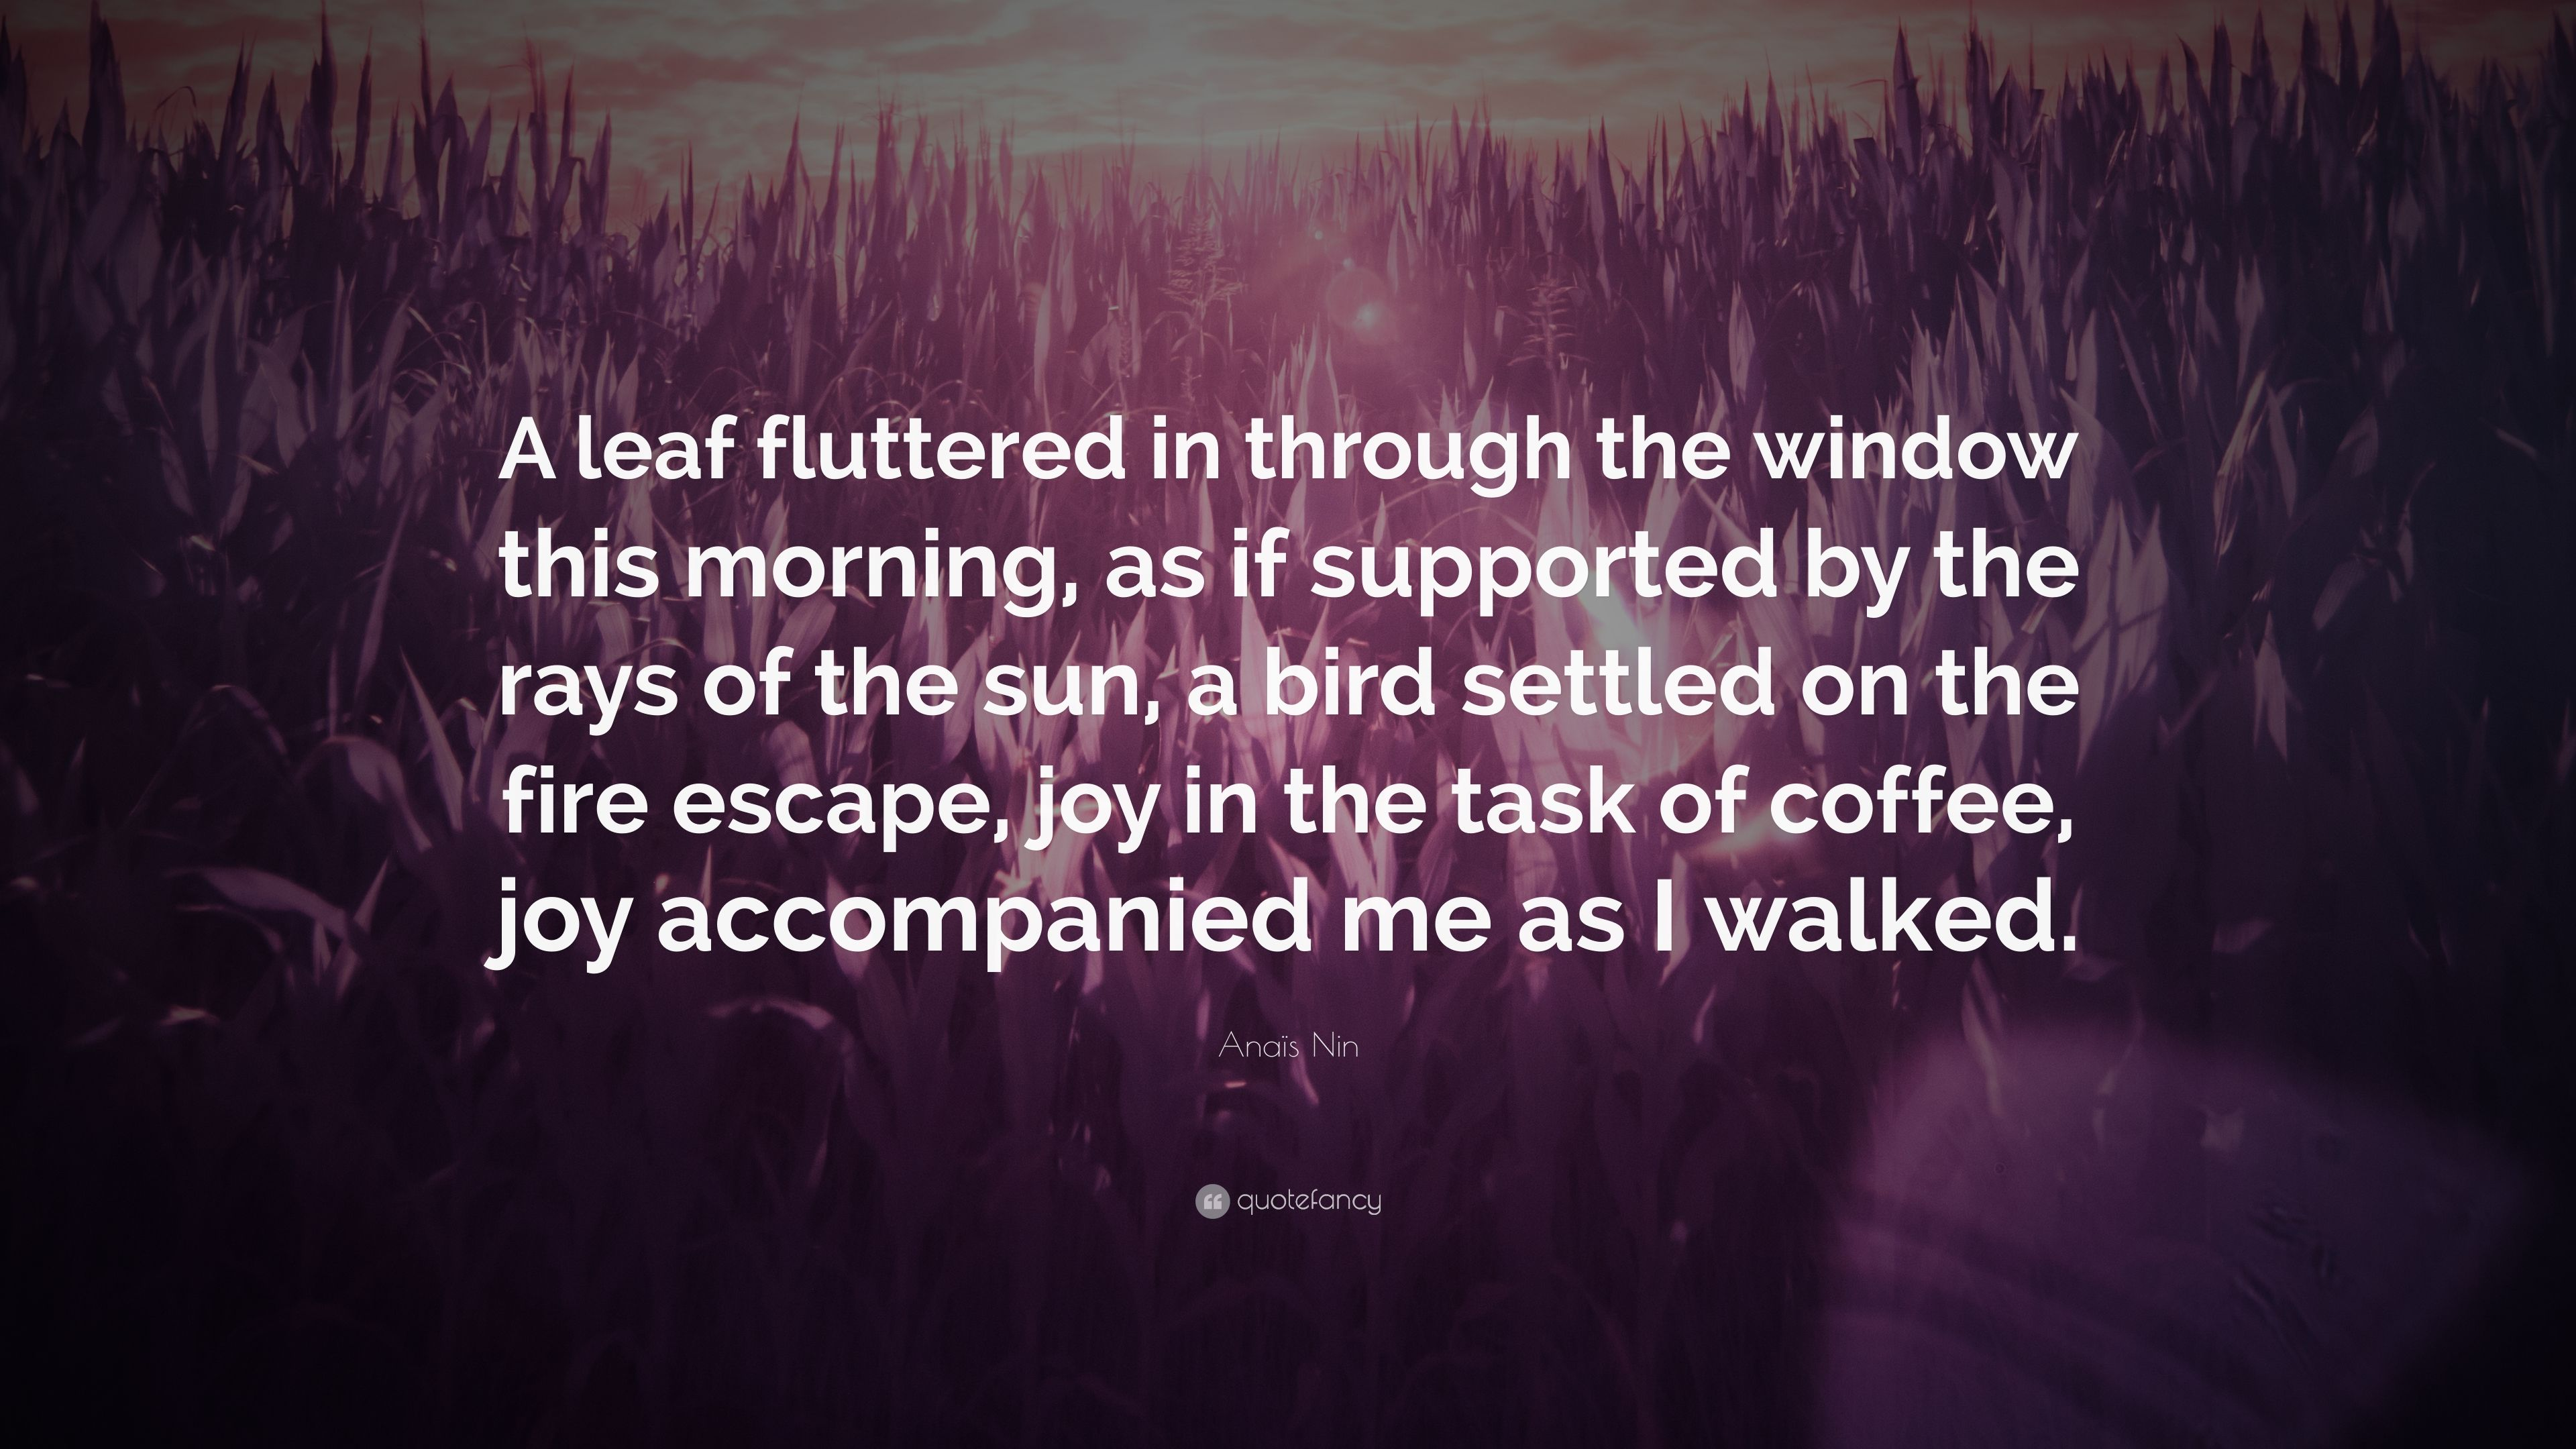 Attractive Anaïs Nin Quote: U201cA Leaf Fluttered In Through The Window This Morning, As